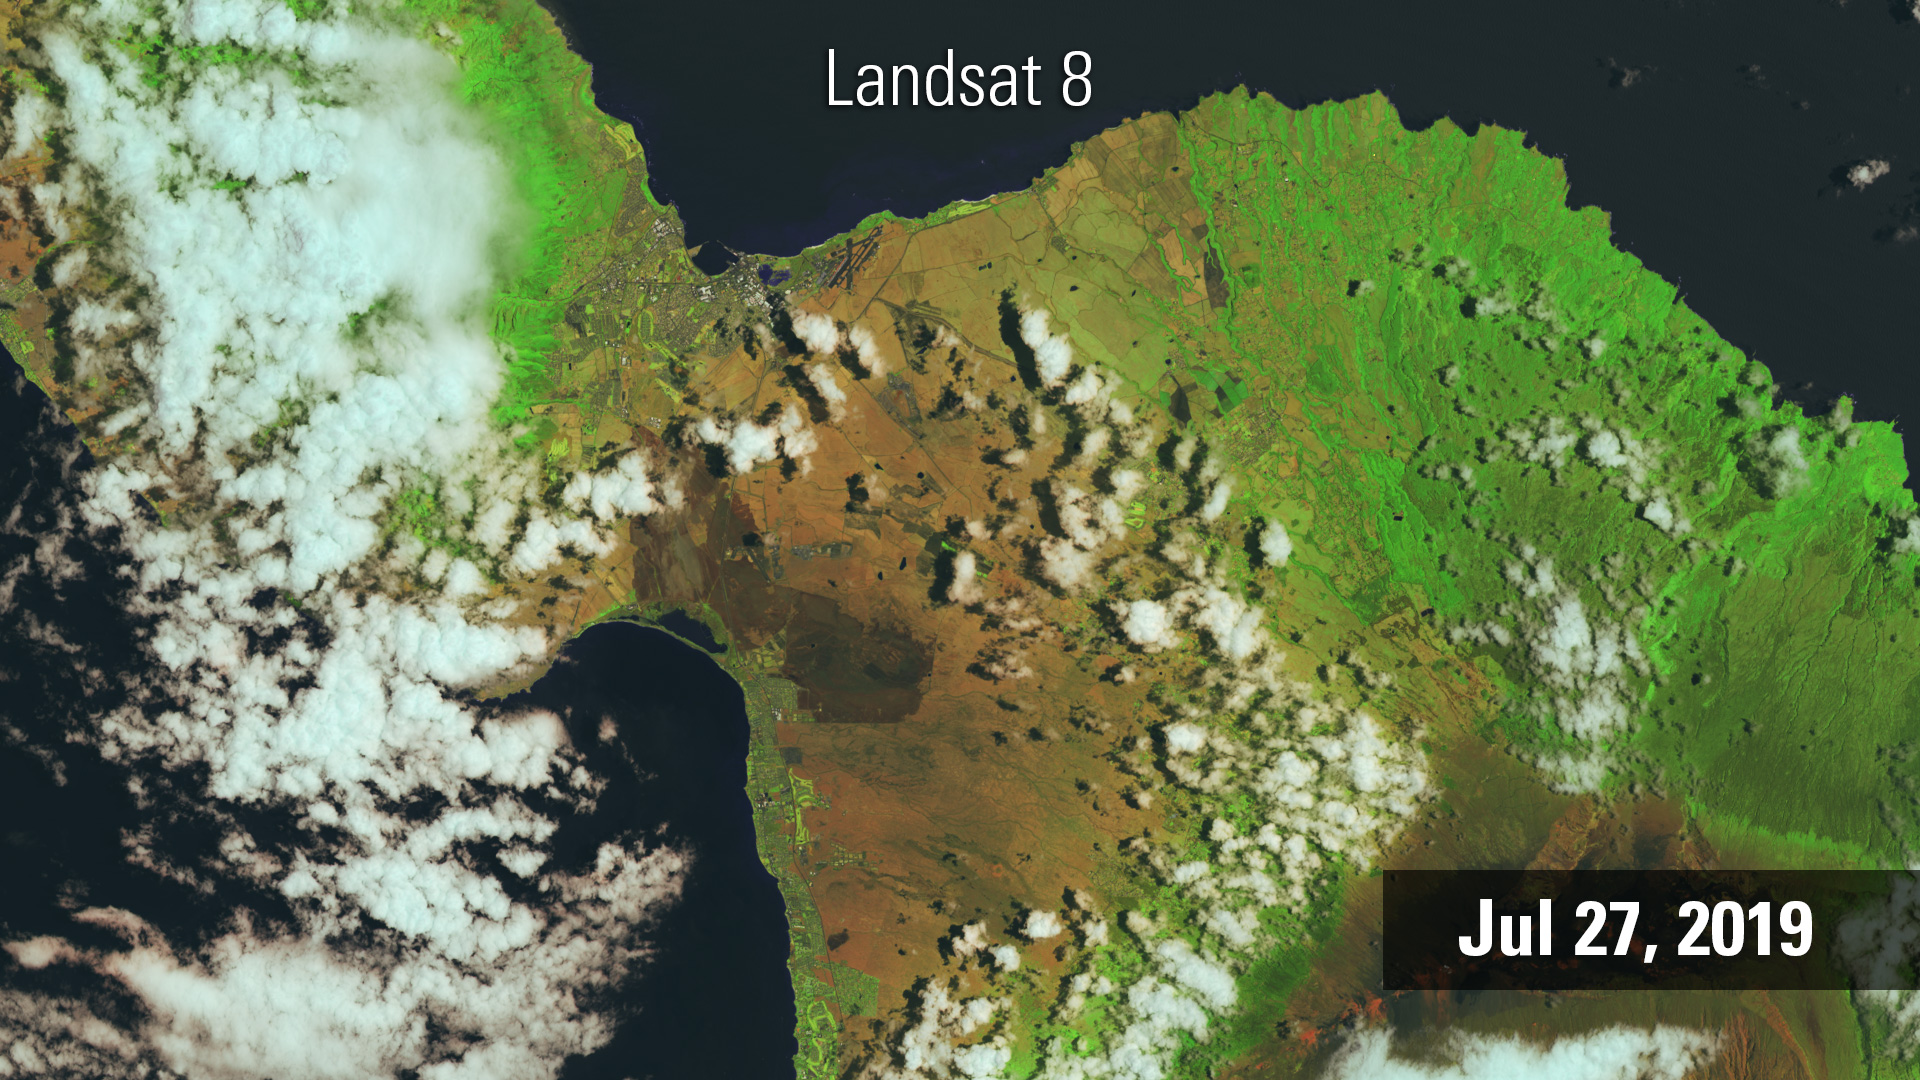 Landsat 8 image of Maui, July 2019